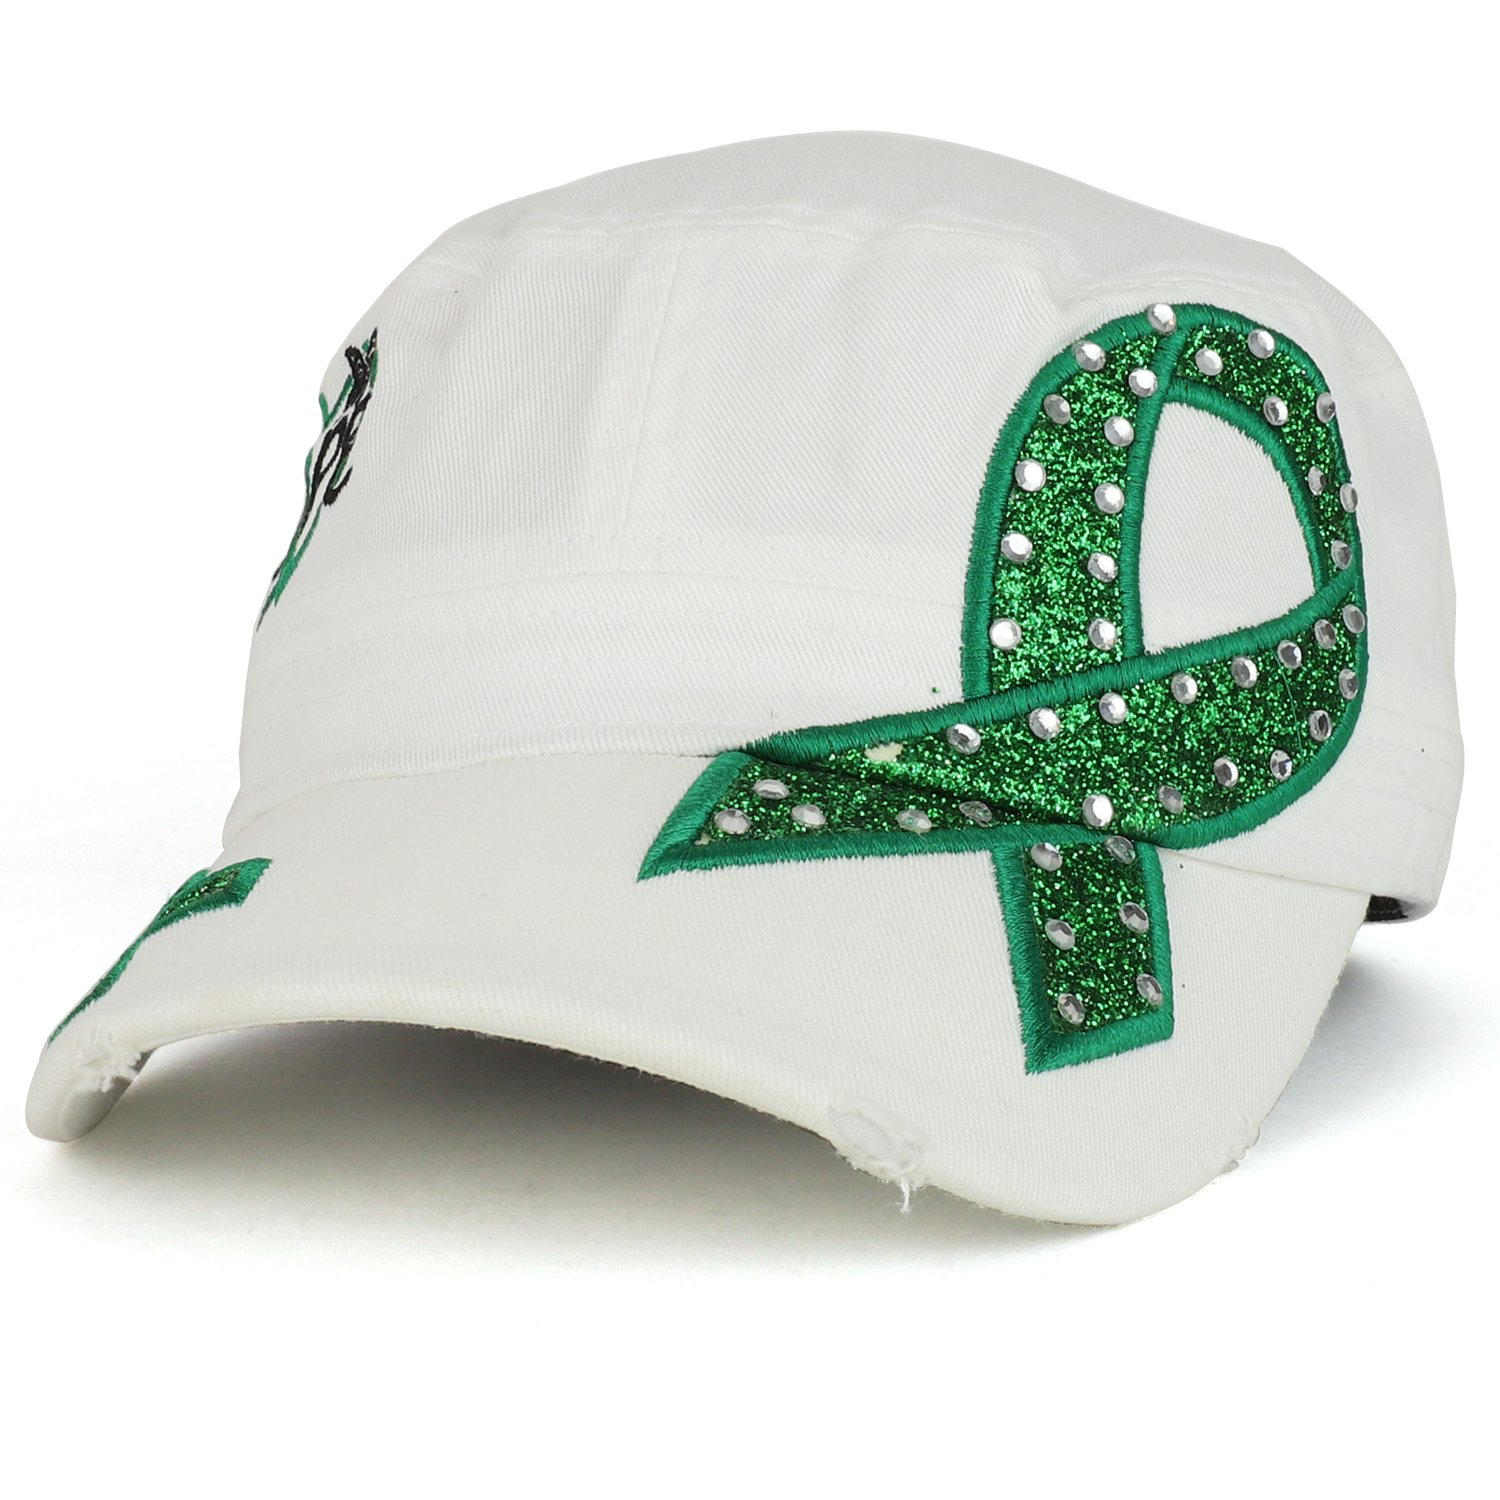 Trendy Apparel Shop Hope Liver Cancer Awareness Green Ribbon Embroidered Jeep Style Army Cap - White